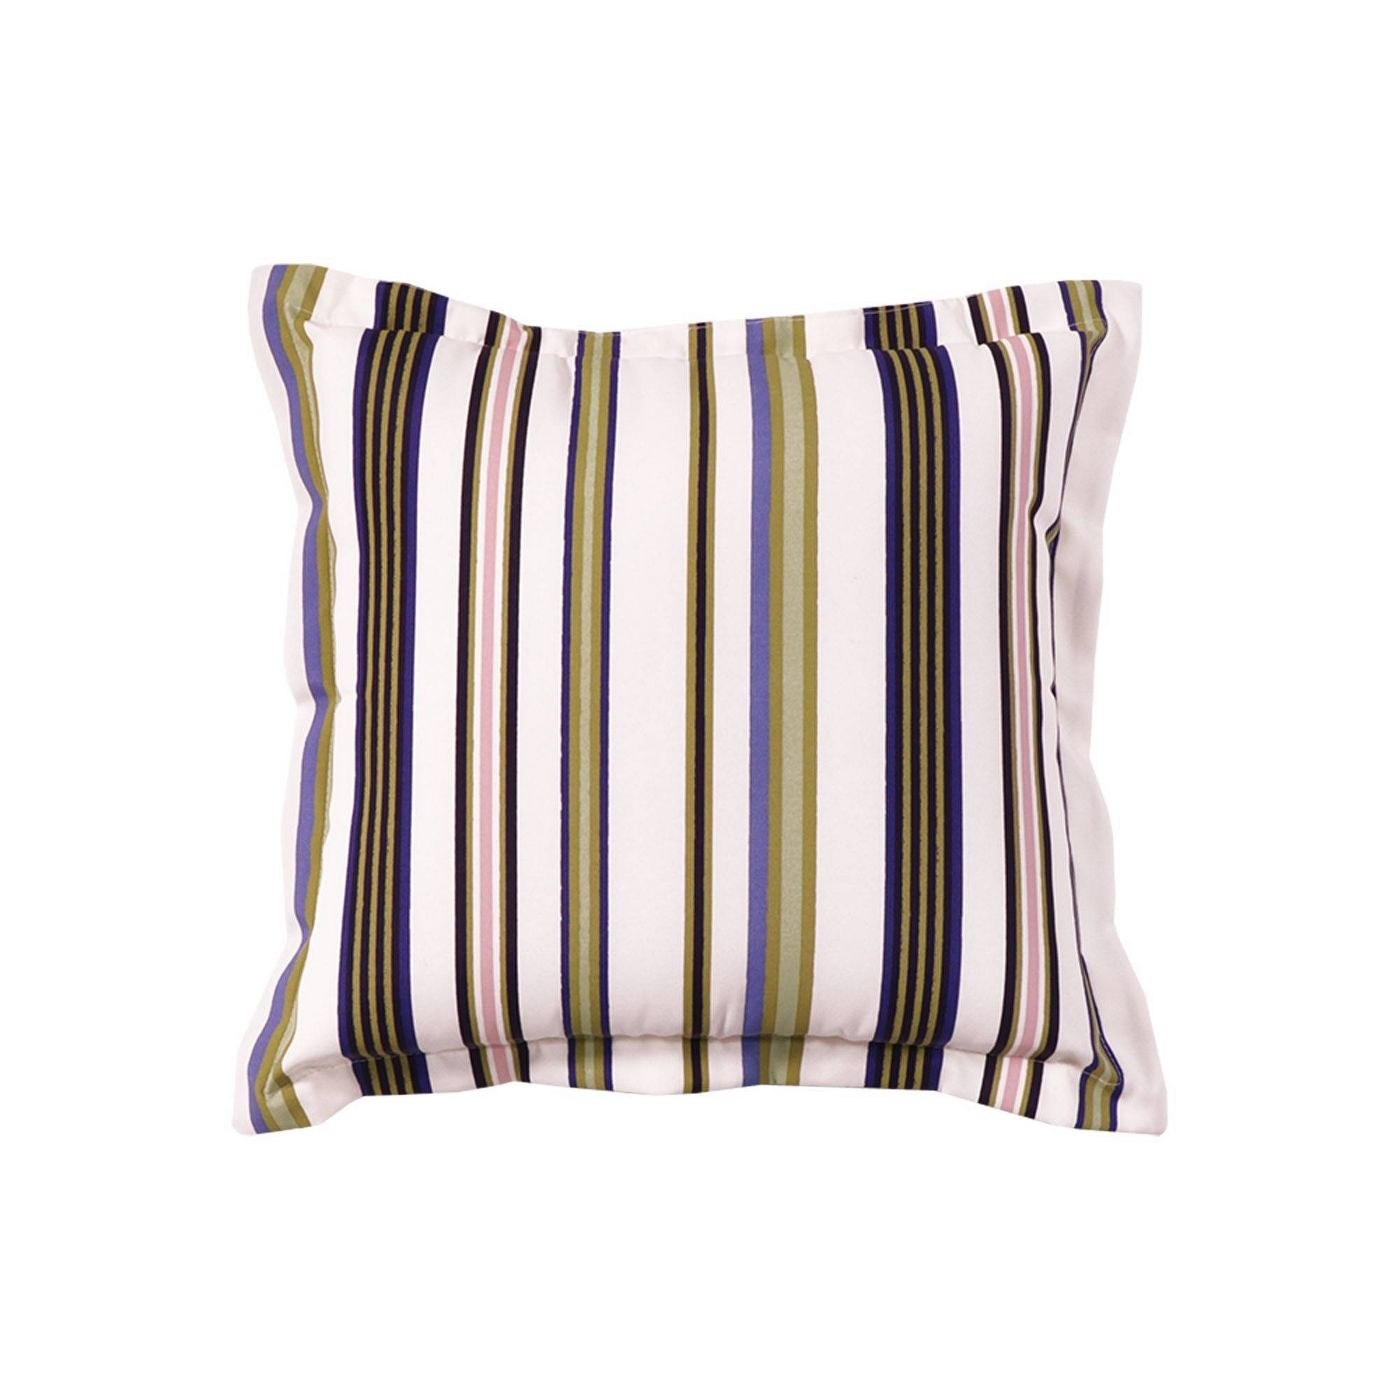 Green, pink, brown, and cream striped pillow